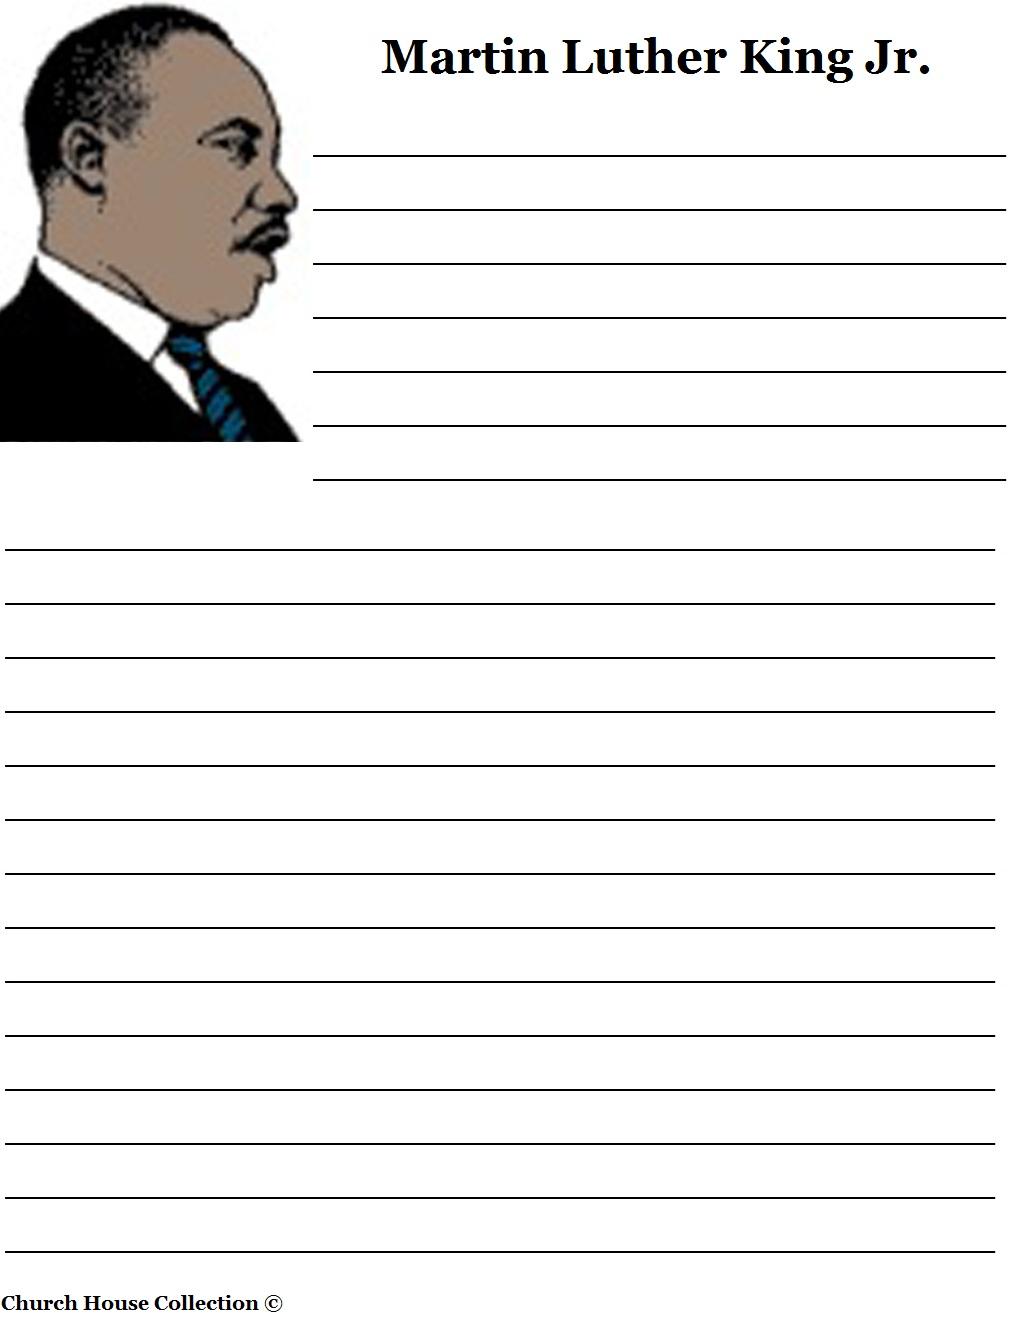 Preschool coloring pages martin luther king - Martin Luther King Jr Coloring Pages Decimamas